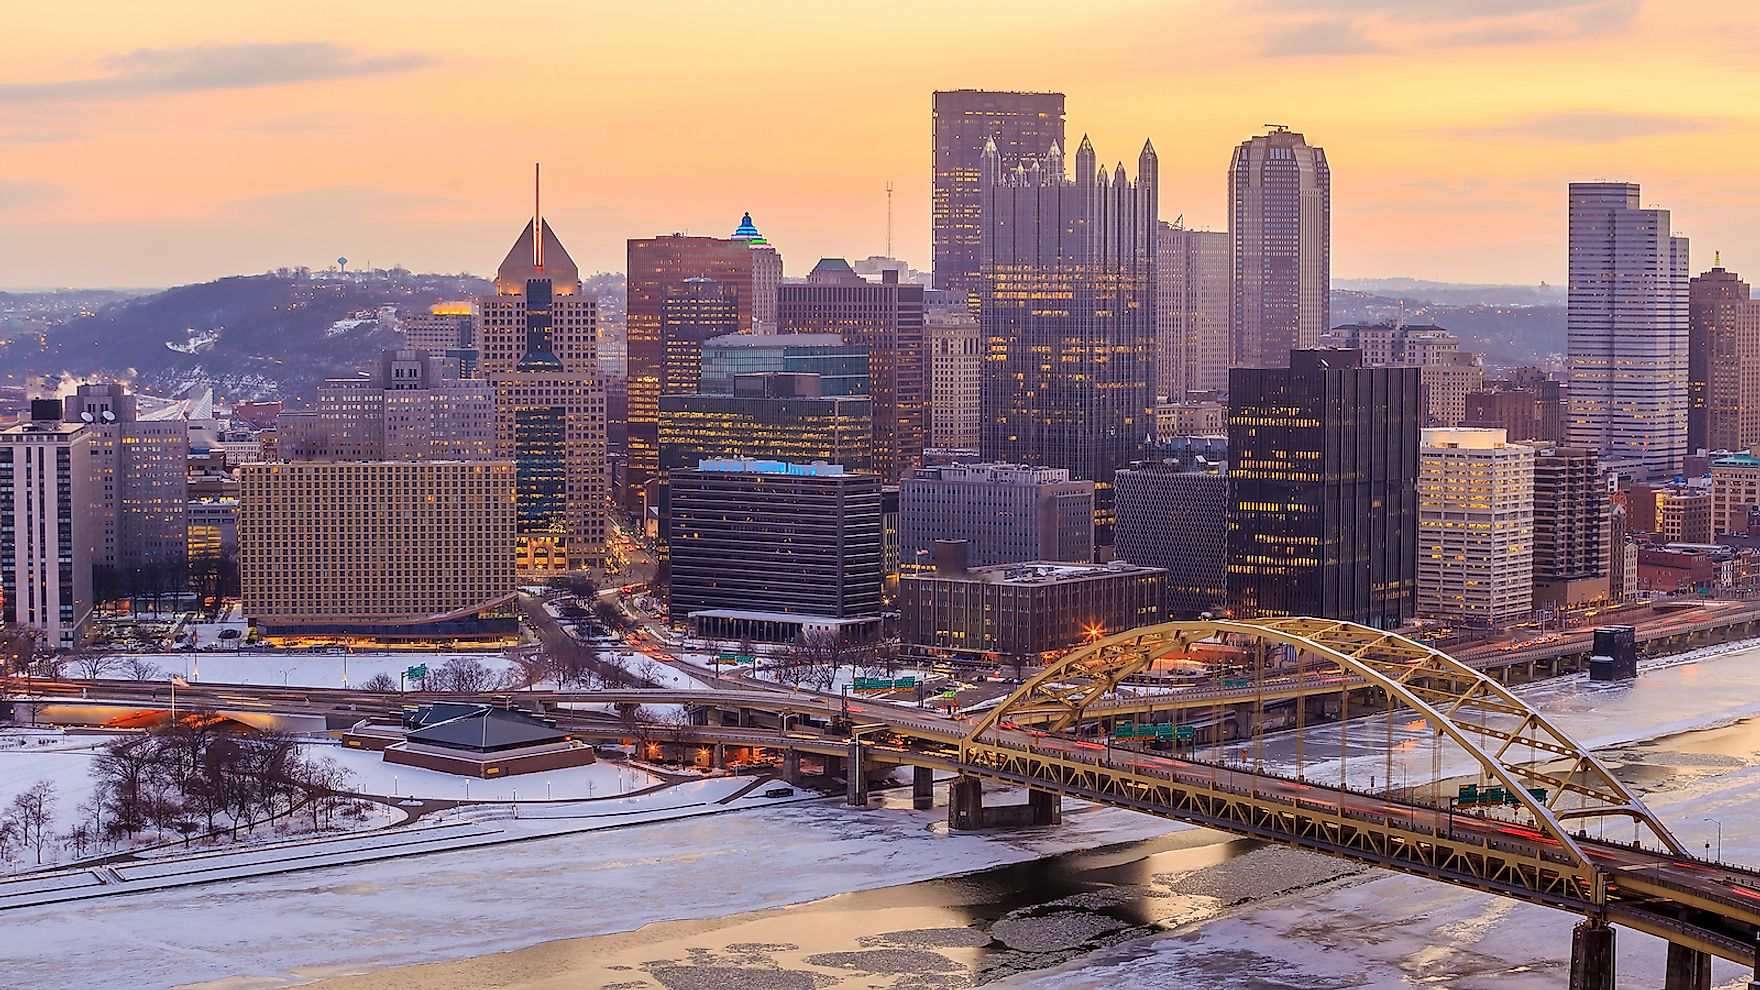 Skyline of downtown Pittsburgh at sunrise.